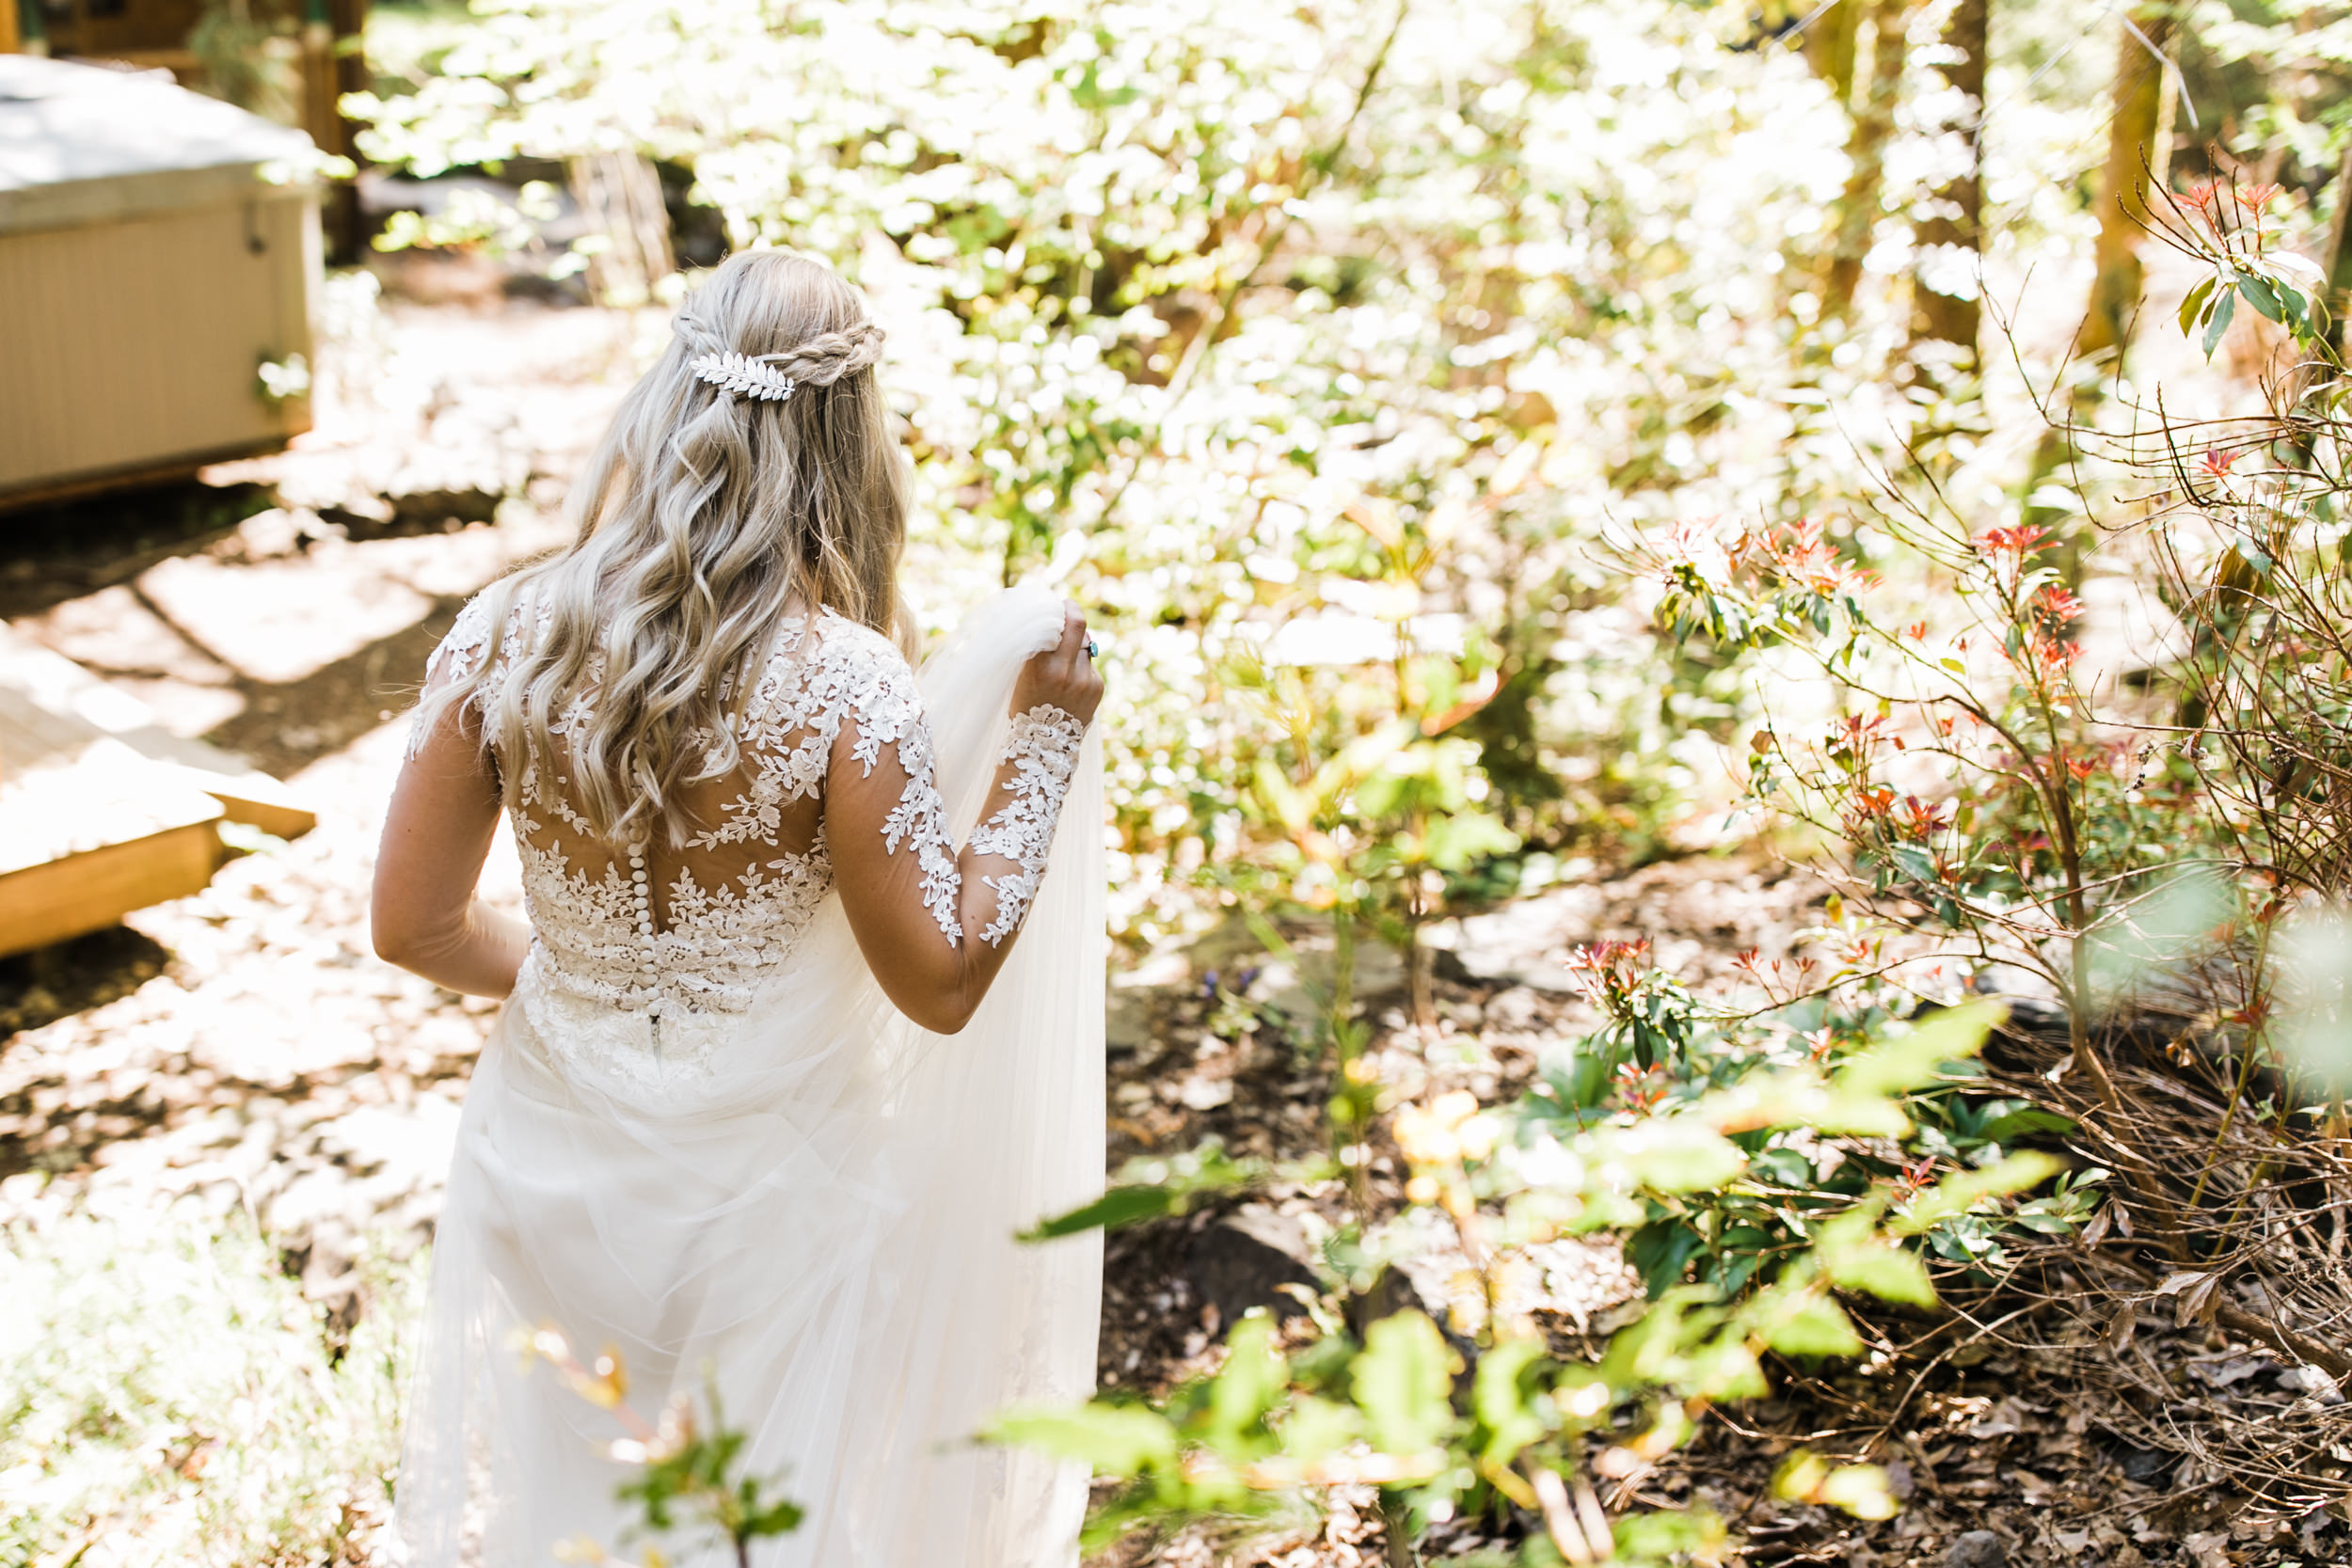 intimate ceremony at an airbnb cabin in washington | long sleeve wedding dress | first dance in the mountains | national park elopement photographer